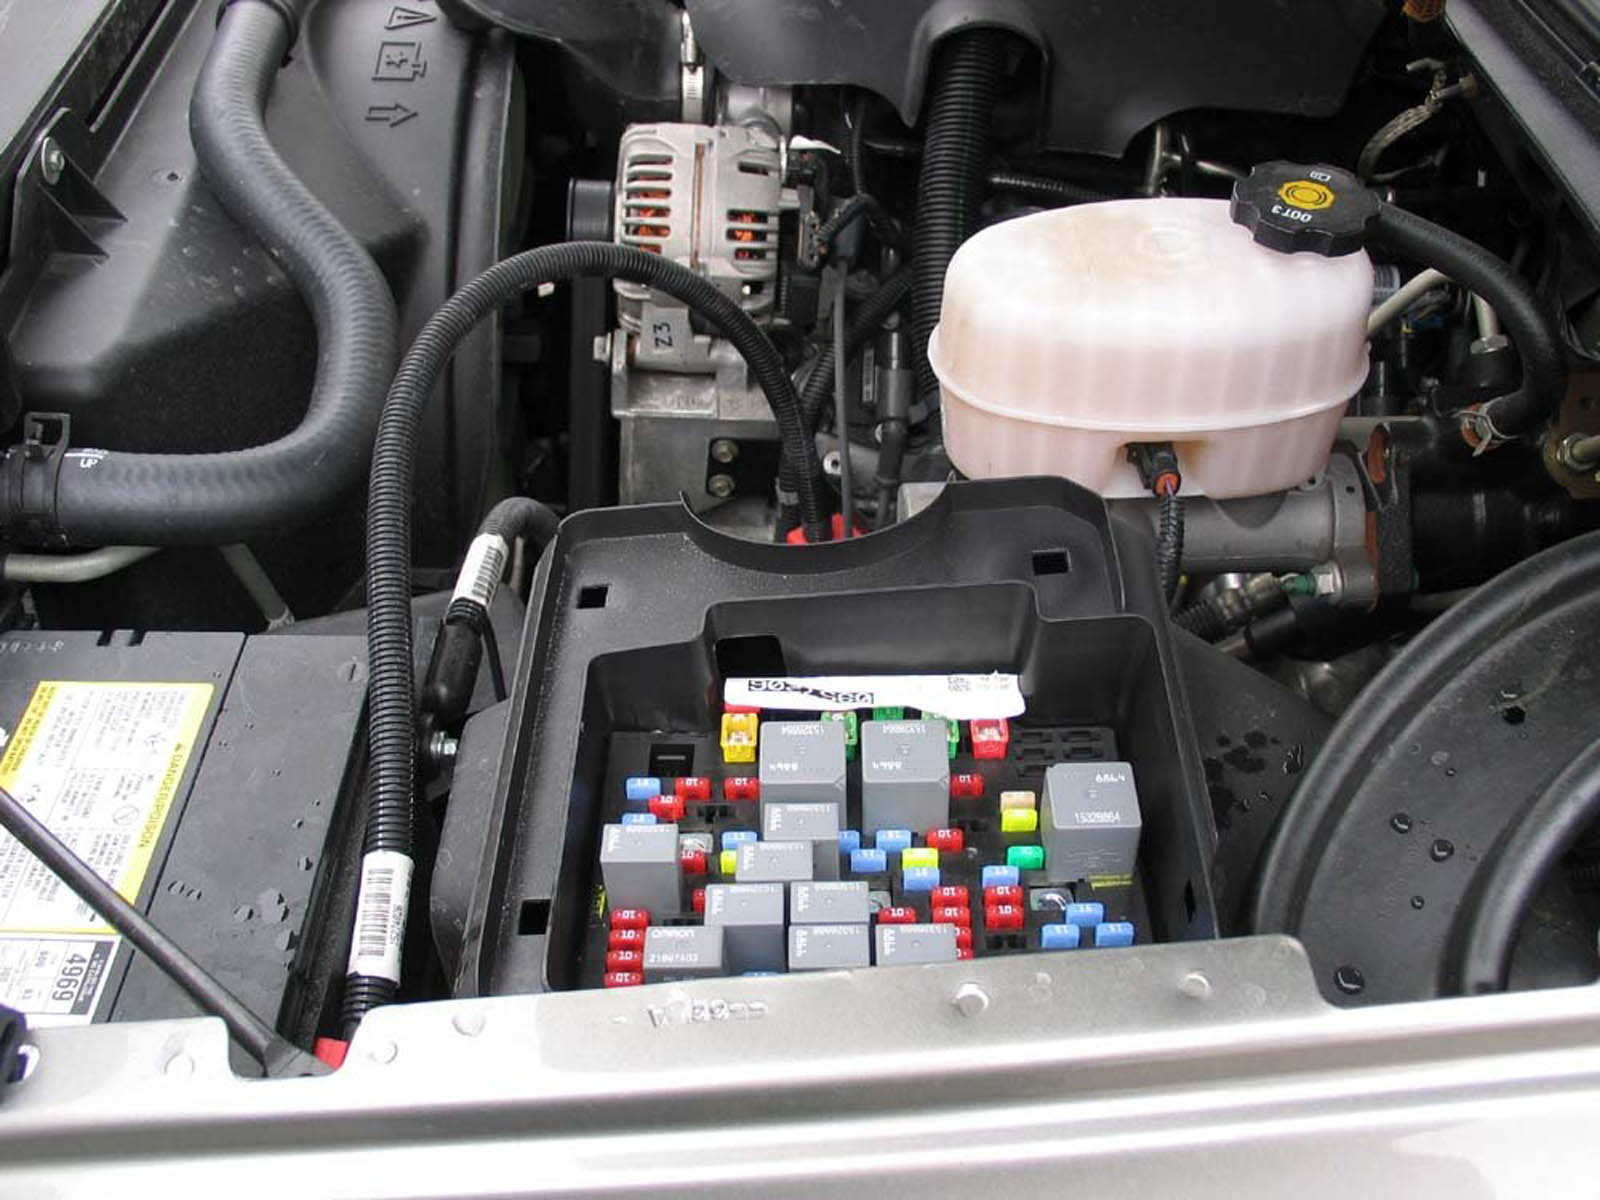 MMMay 27 Fuse Box 04 69845 chevrolet silverado gmt800 1999 2006 fuse box diagram chevroletforum 2010 chevy express 3500 fuse box location at n-0.co